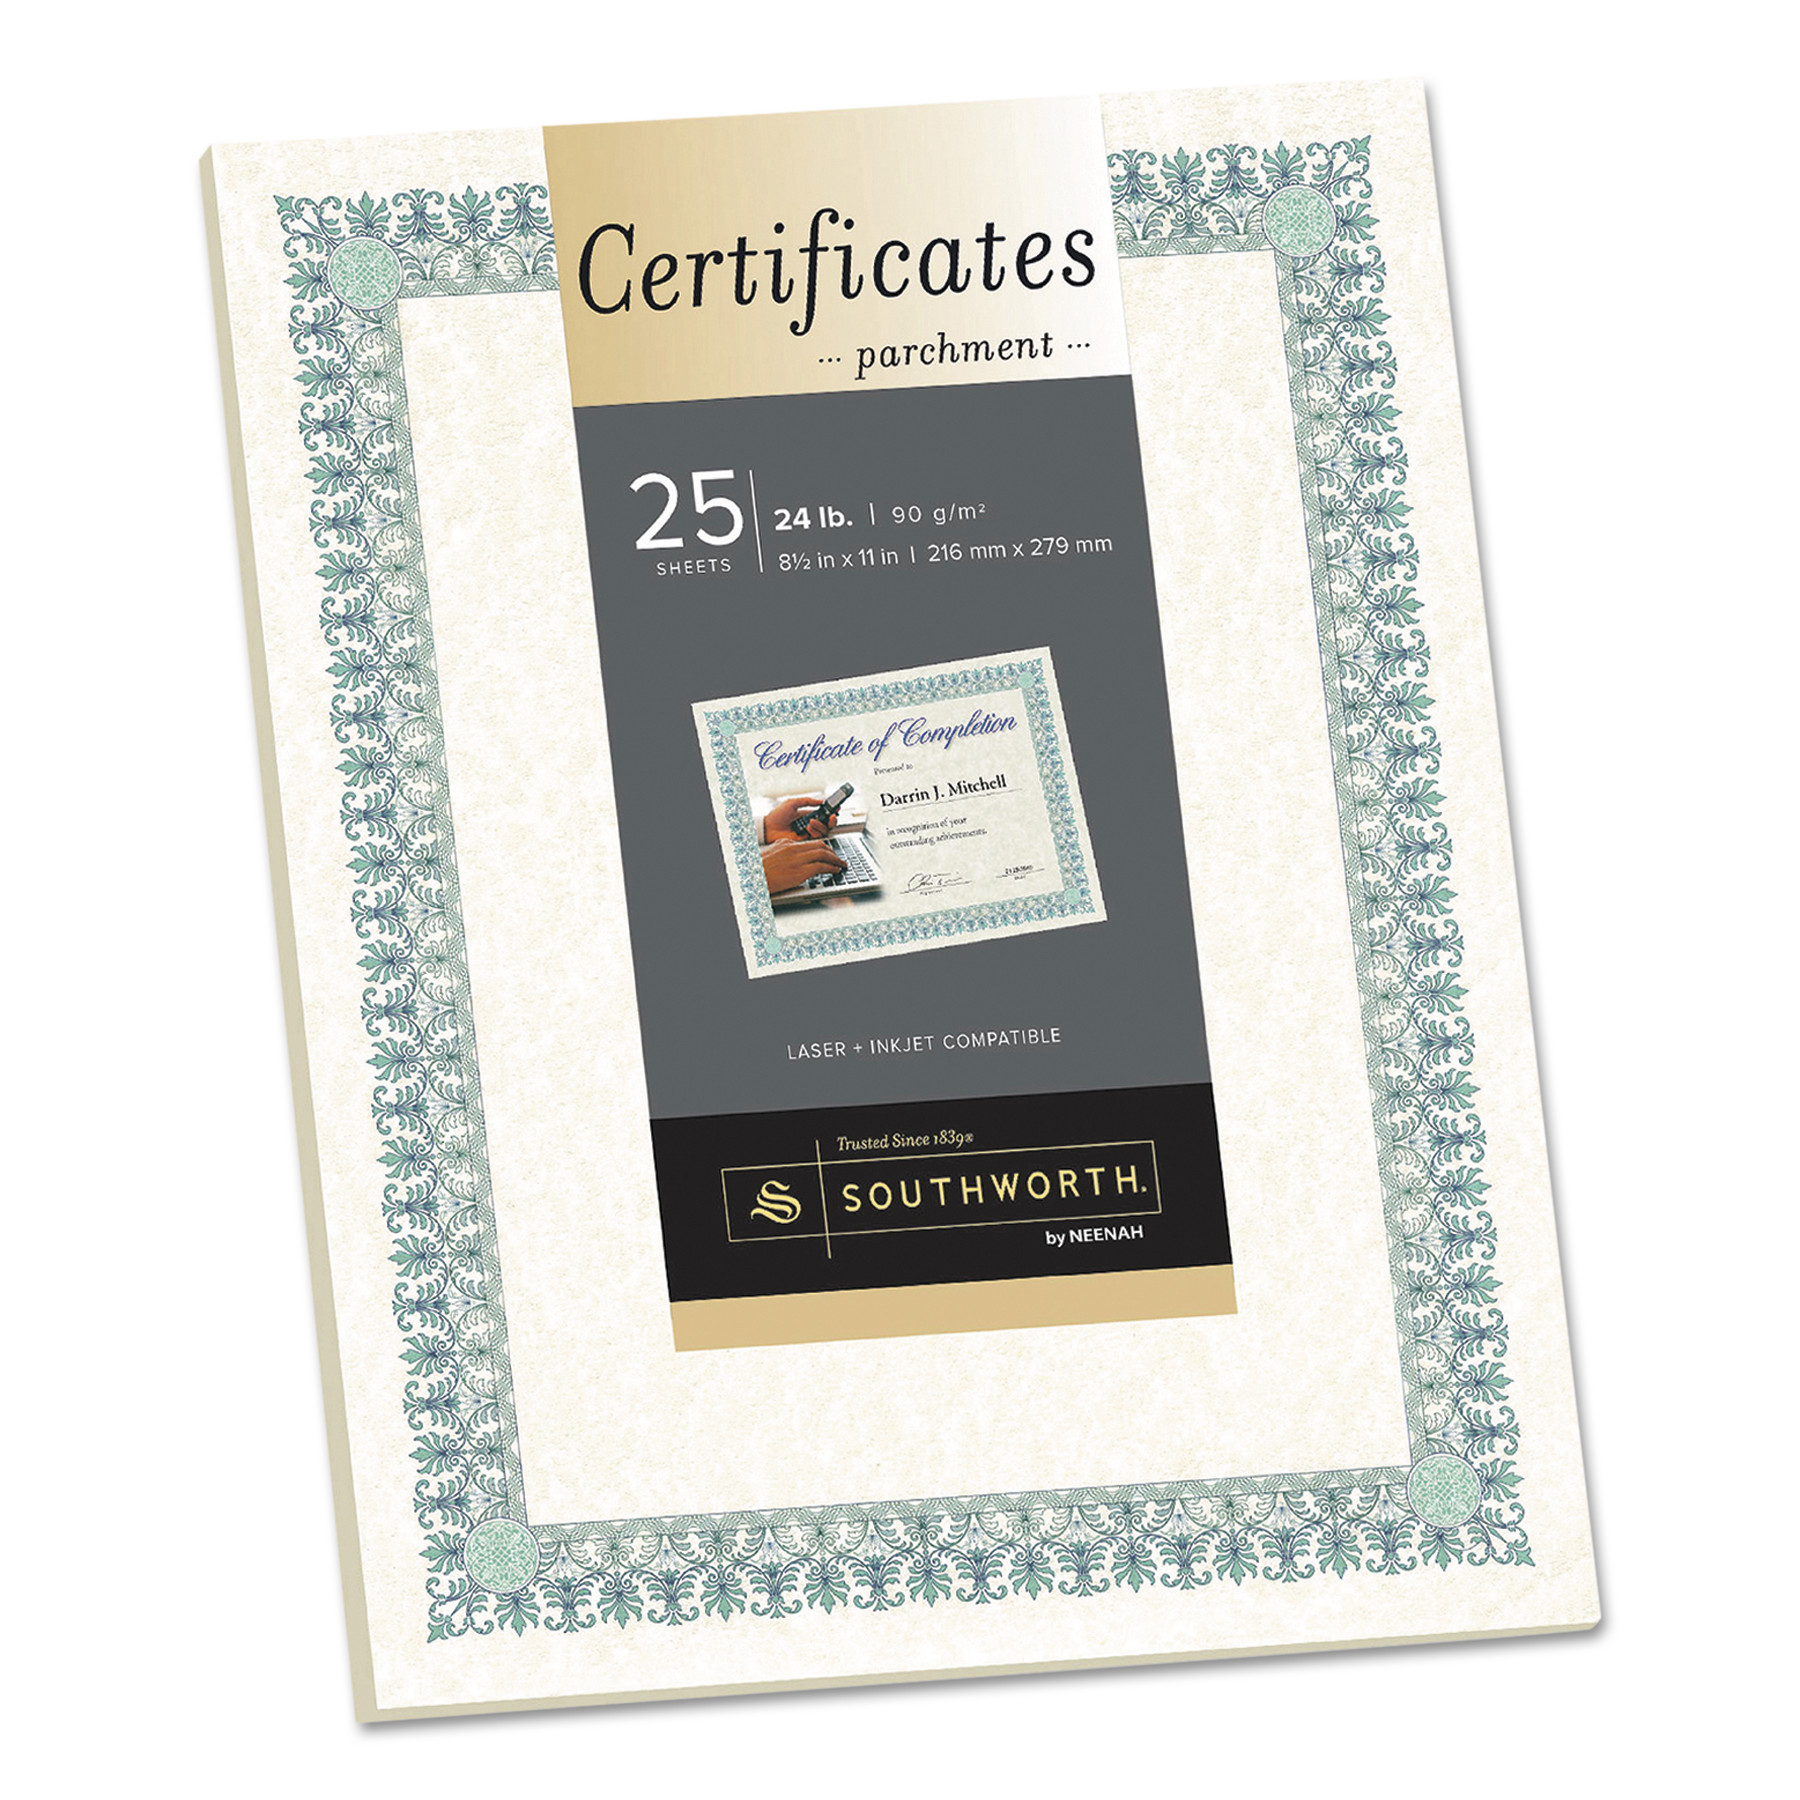 Southworth Parchment Certificates, Ivory w/Green & Blue Border, 8 1/2 x 11, 25/Pack -SOUCT3R